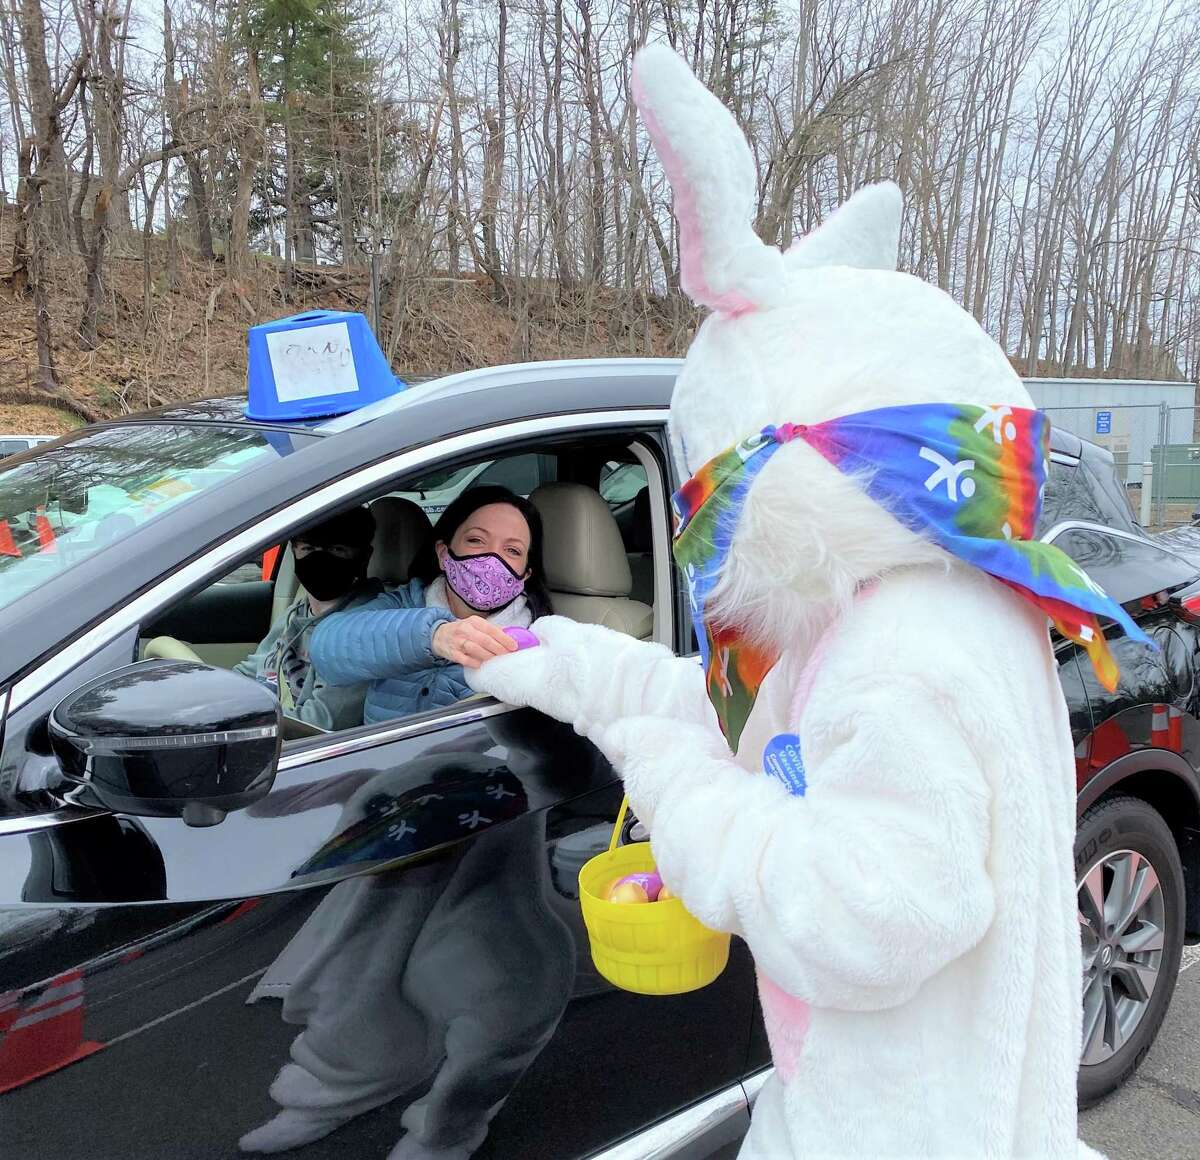 The Middletown-based Community Health Center received an unexpected delivery of 800 purple and gold wooden Easter Eggs directly from the White House Friday.